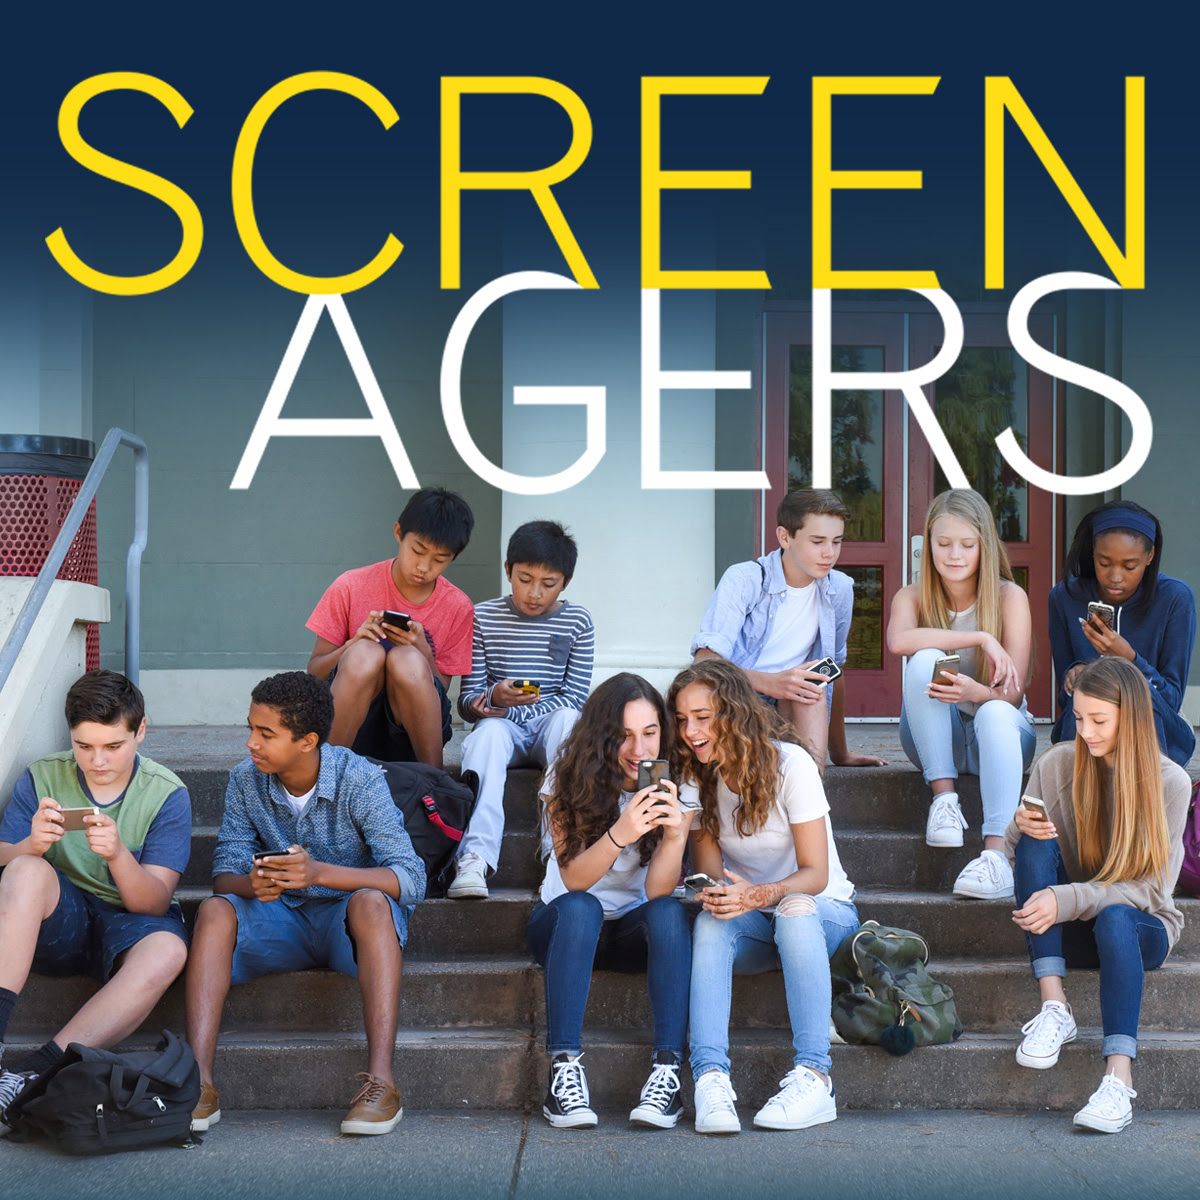 Screenagers Film Presented By Barnstable Academy